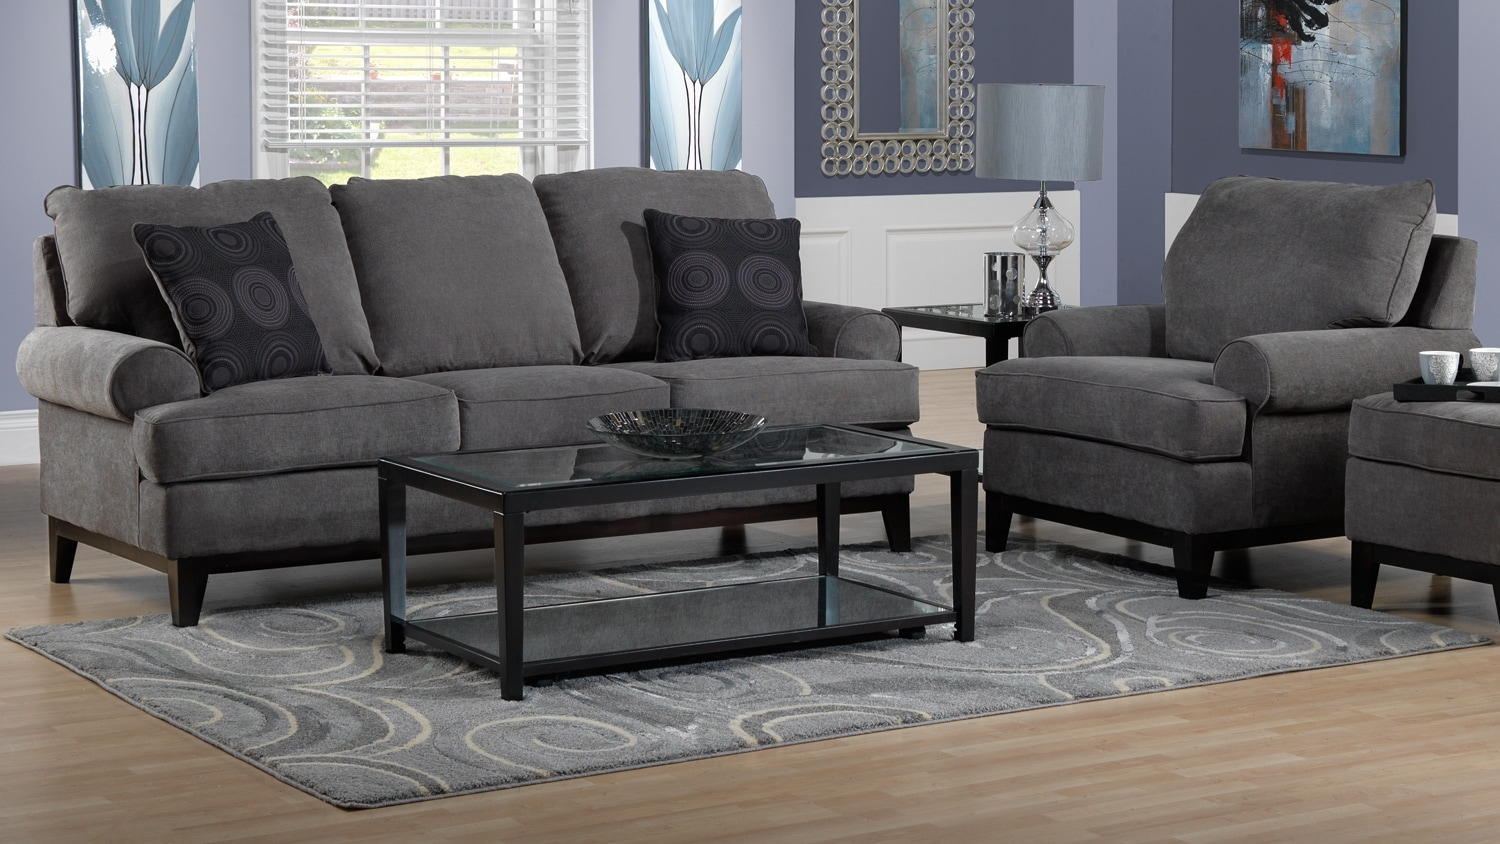 Crizia Sofa and Chair Set - Dark Grey